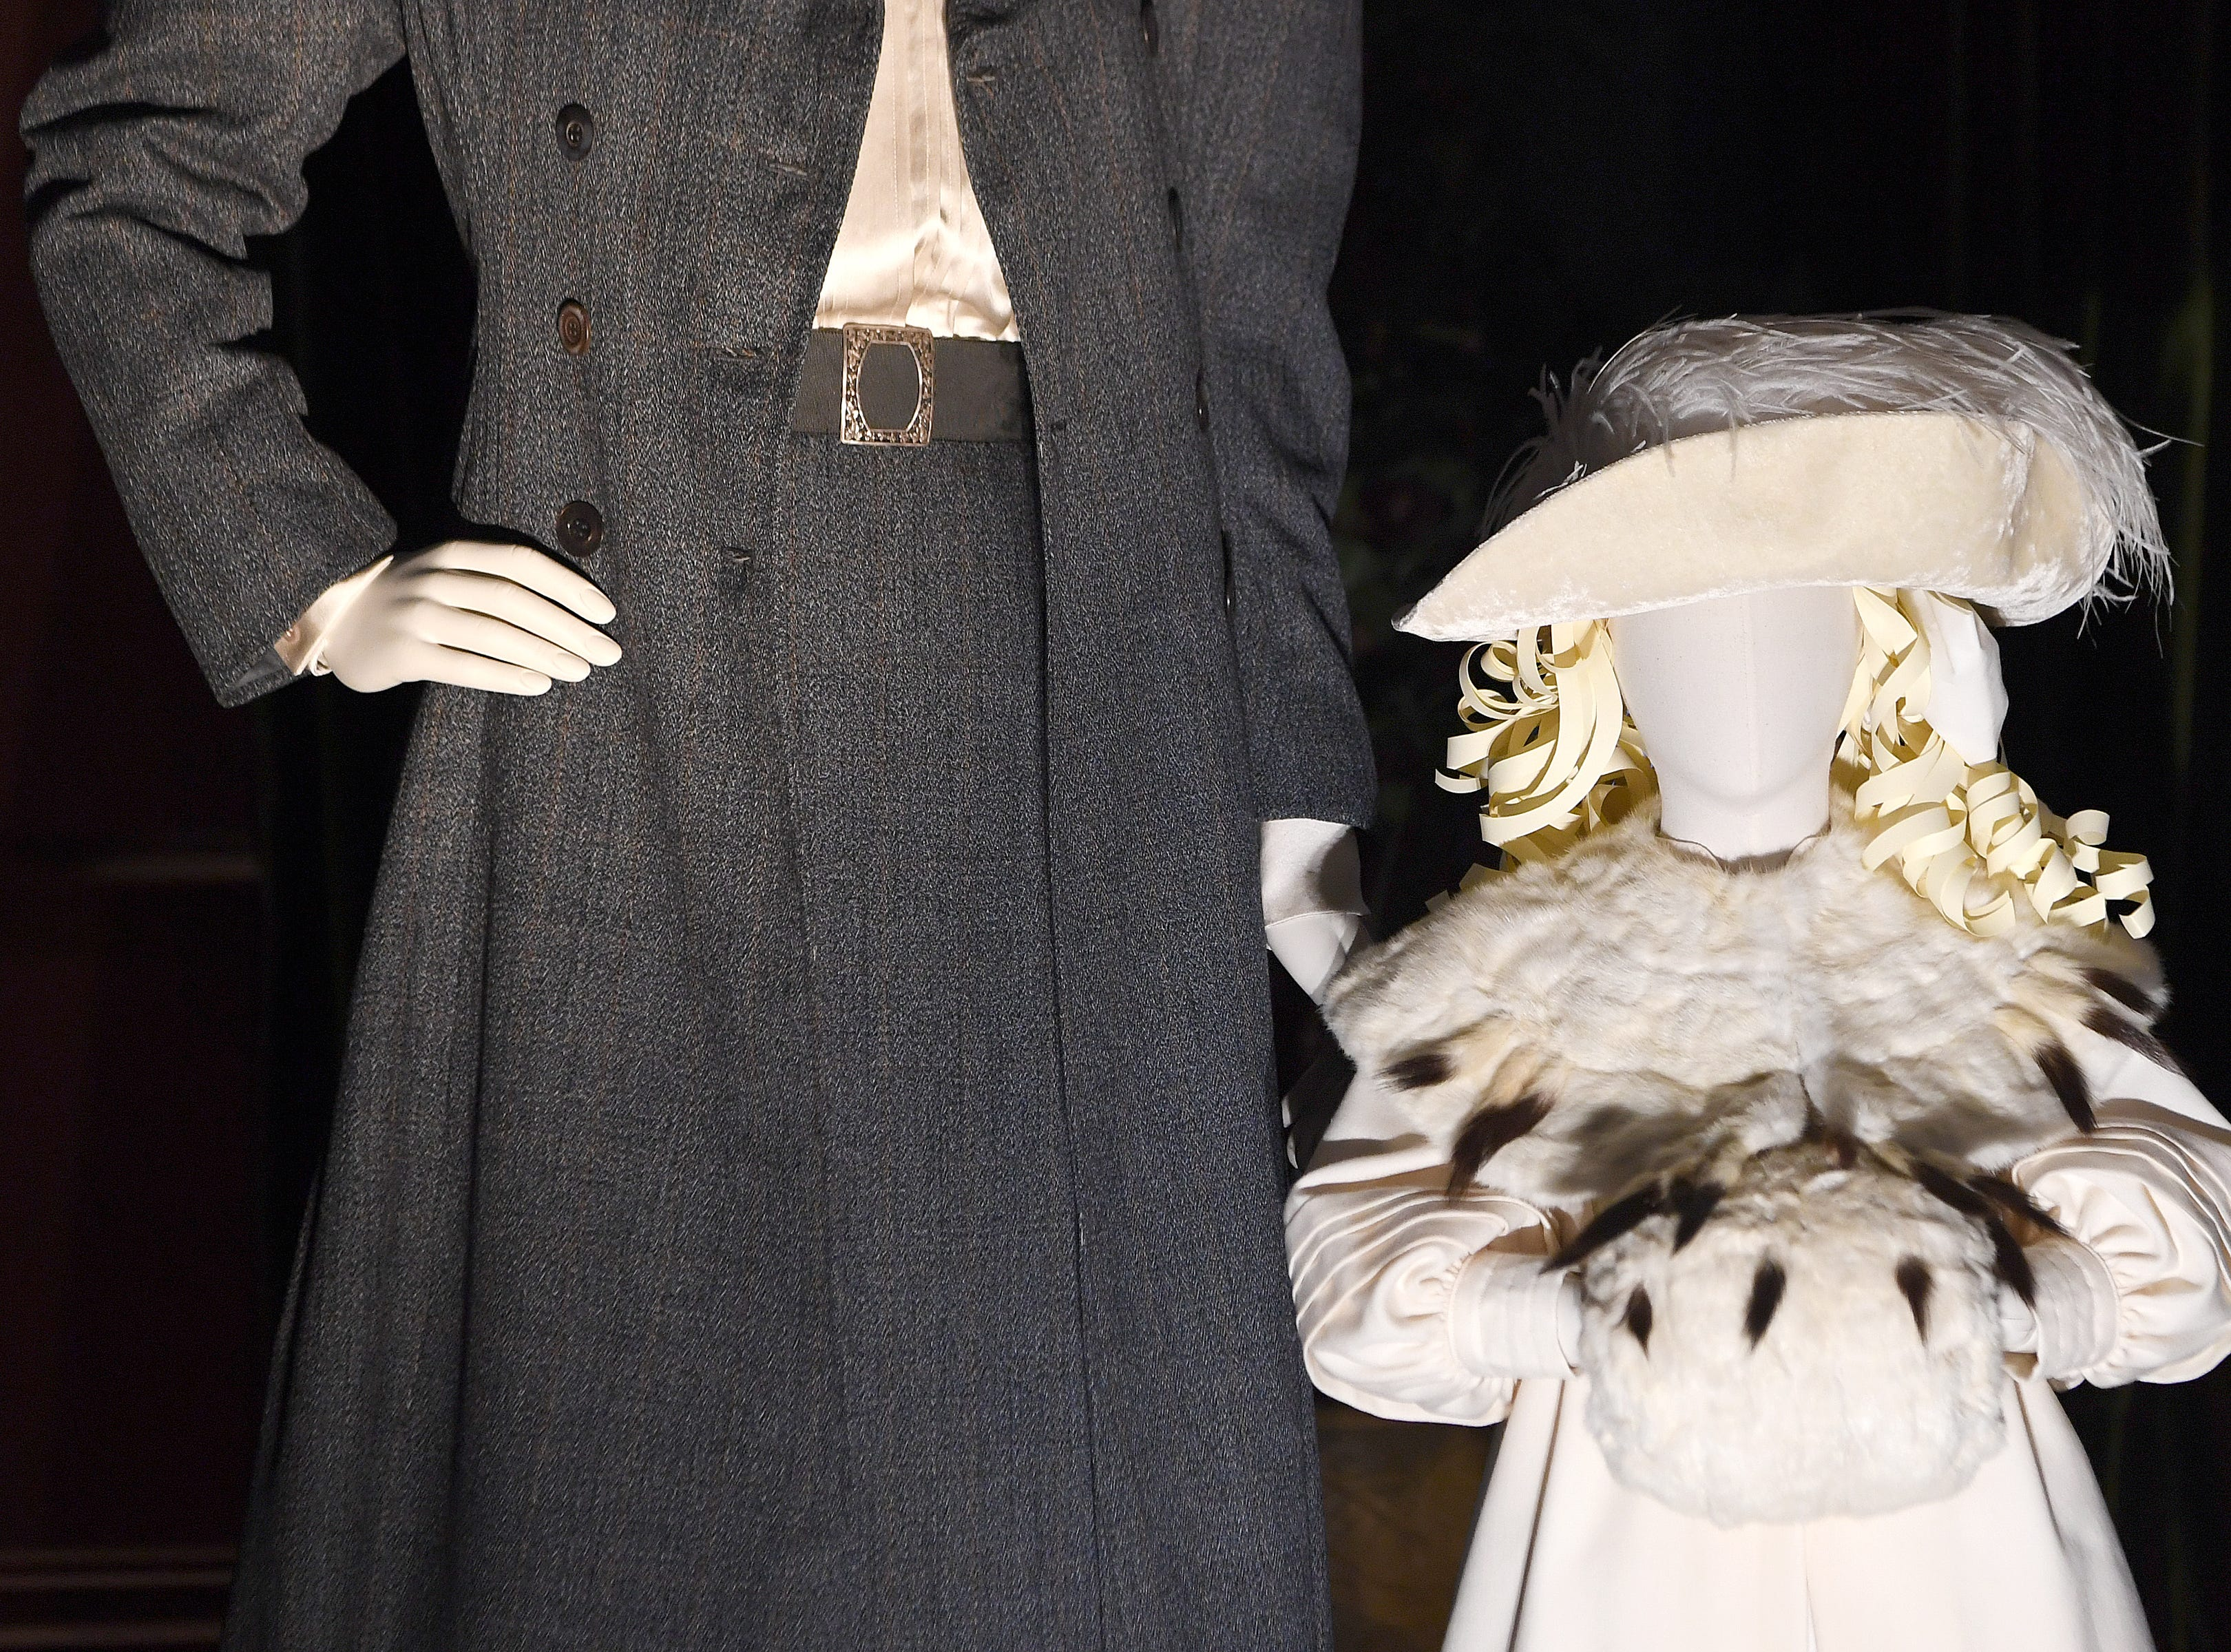 """Outfits created from photographs of Pauline Dresser Merrill, Edith Vanderbilt's sister, and Cornelia Vanderbilt, showing what they would wear around the grounds of the estate are on display for """"A Vanderbilt House Party, the Gilded Age,"""" on Feb. 7, 2019."""